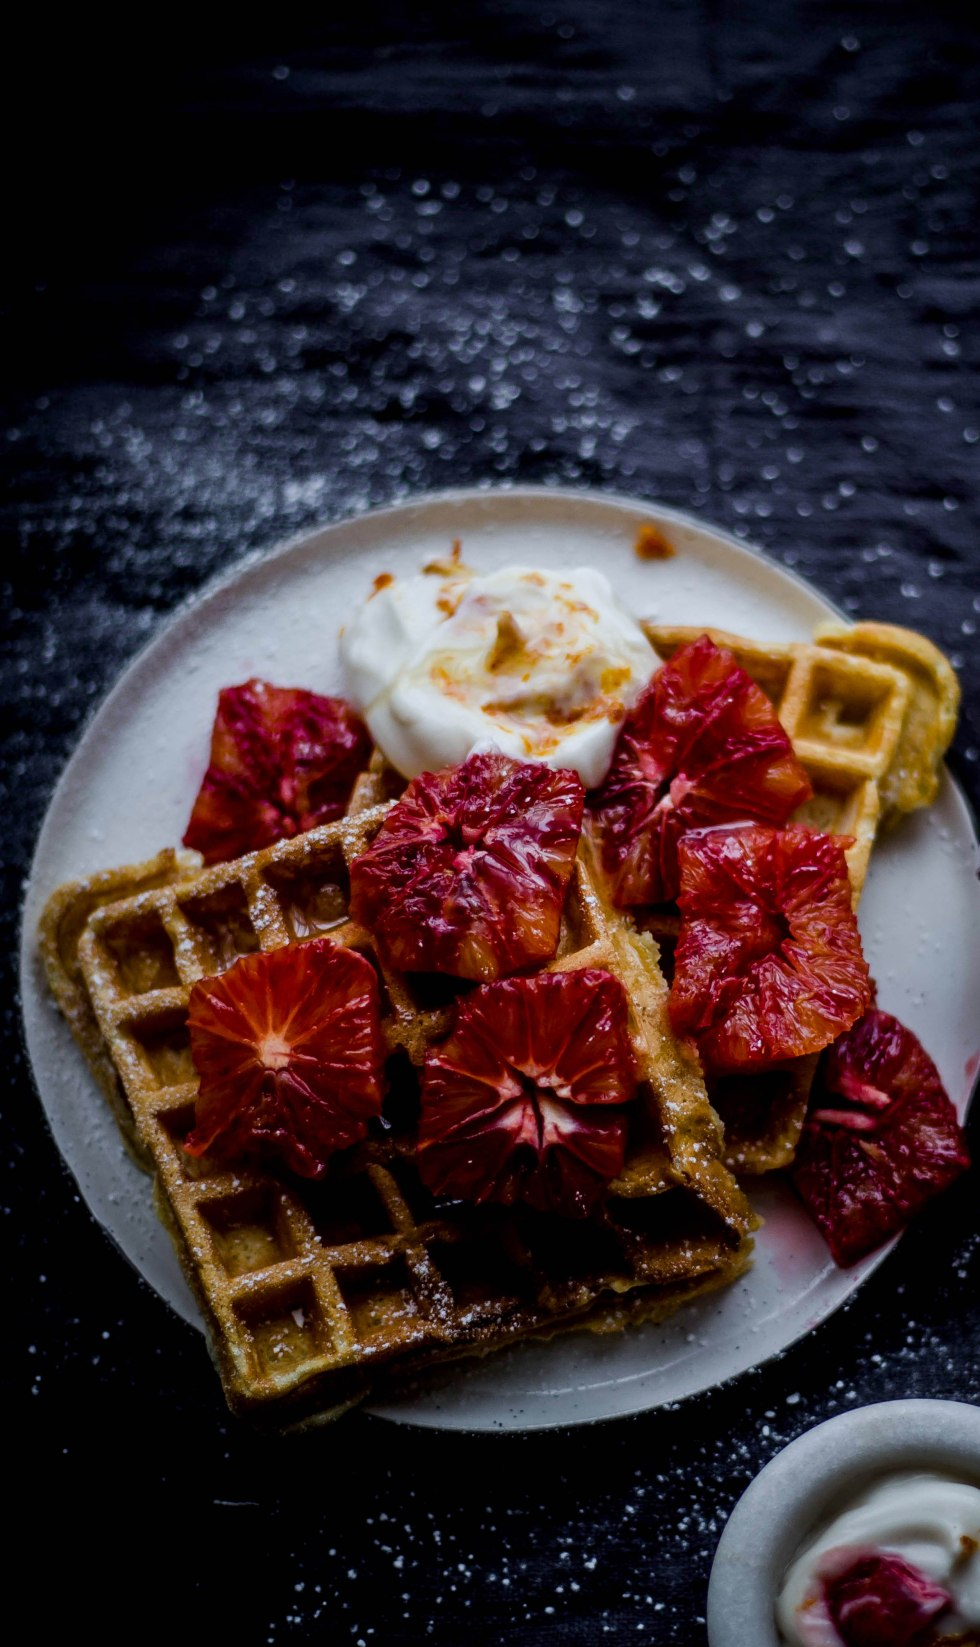 Cardamom and Cinnamon Waffles with Blood Orange Yoghurt and pieces of blood oranges on a plate on a grey background dusted with icing sugar